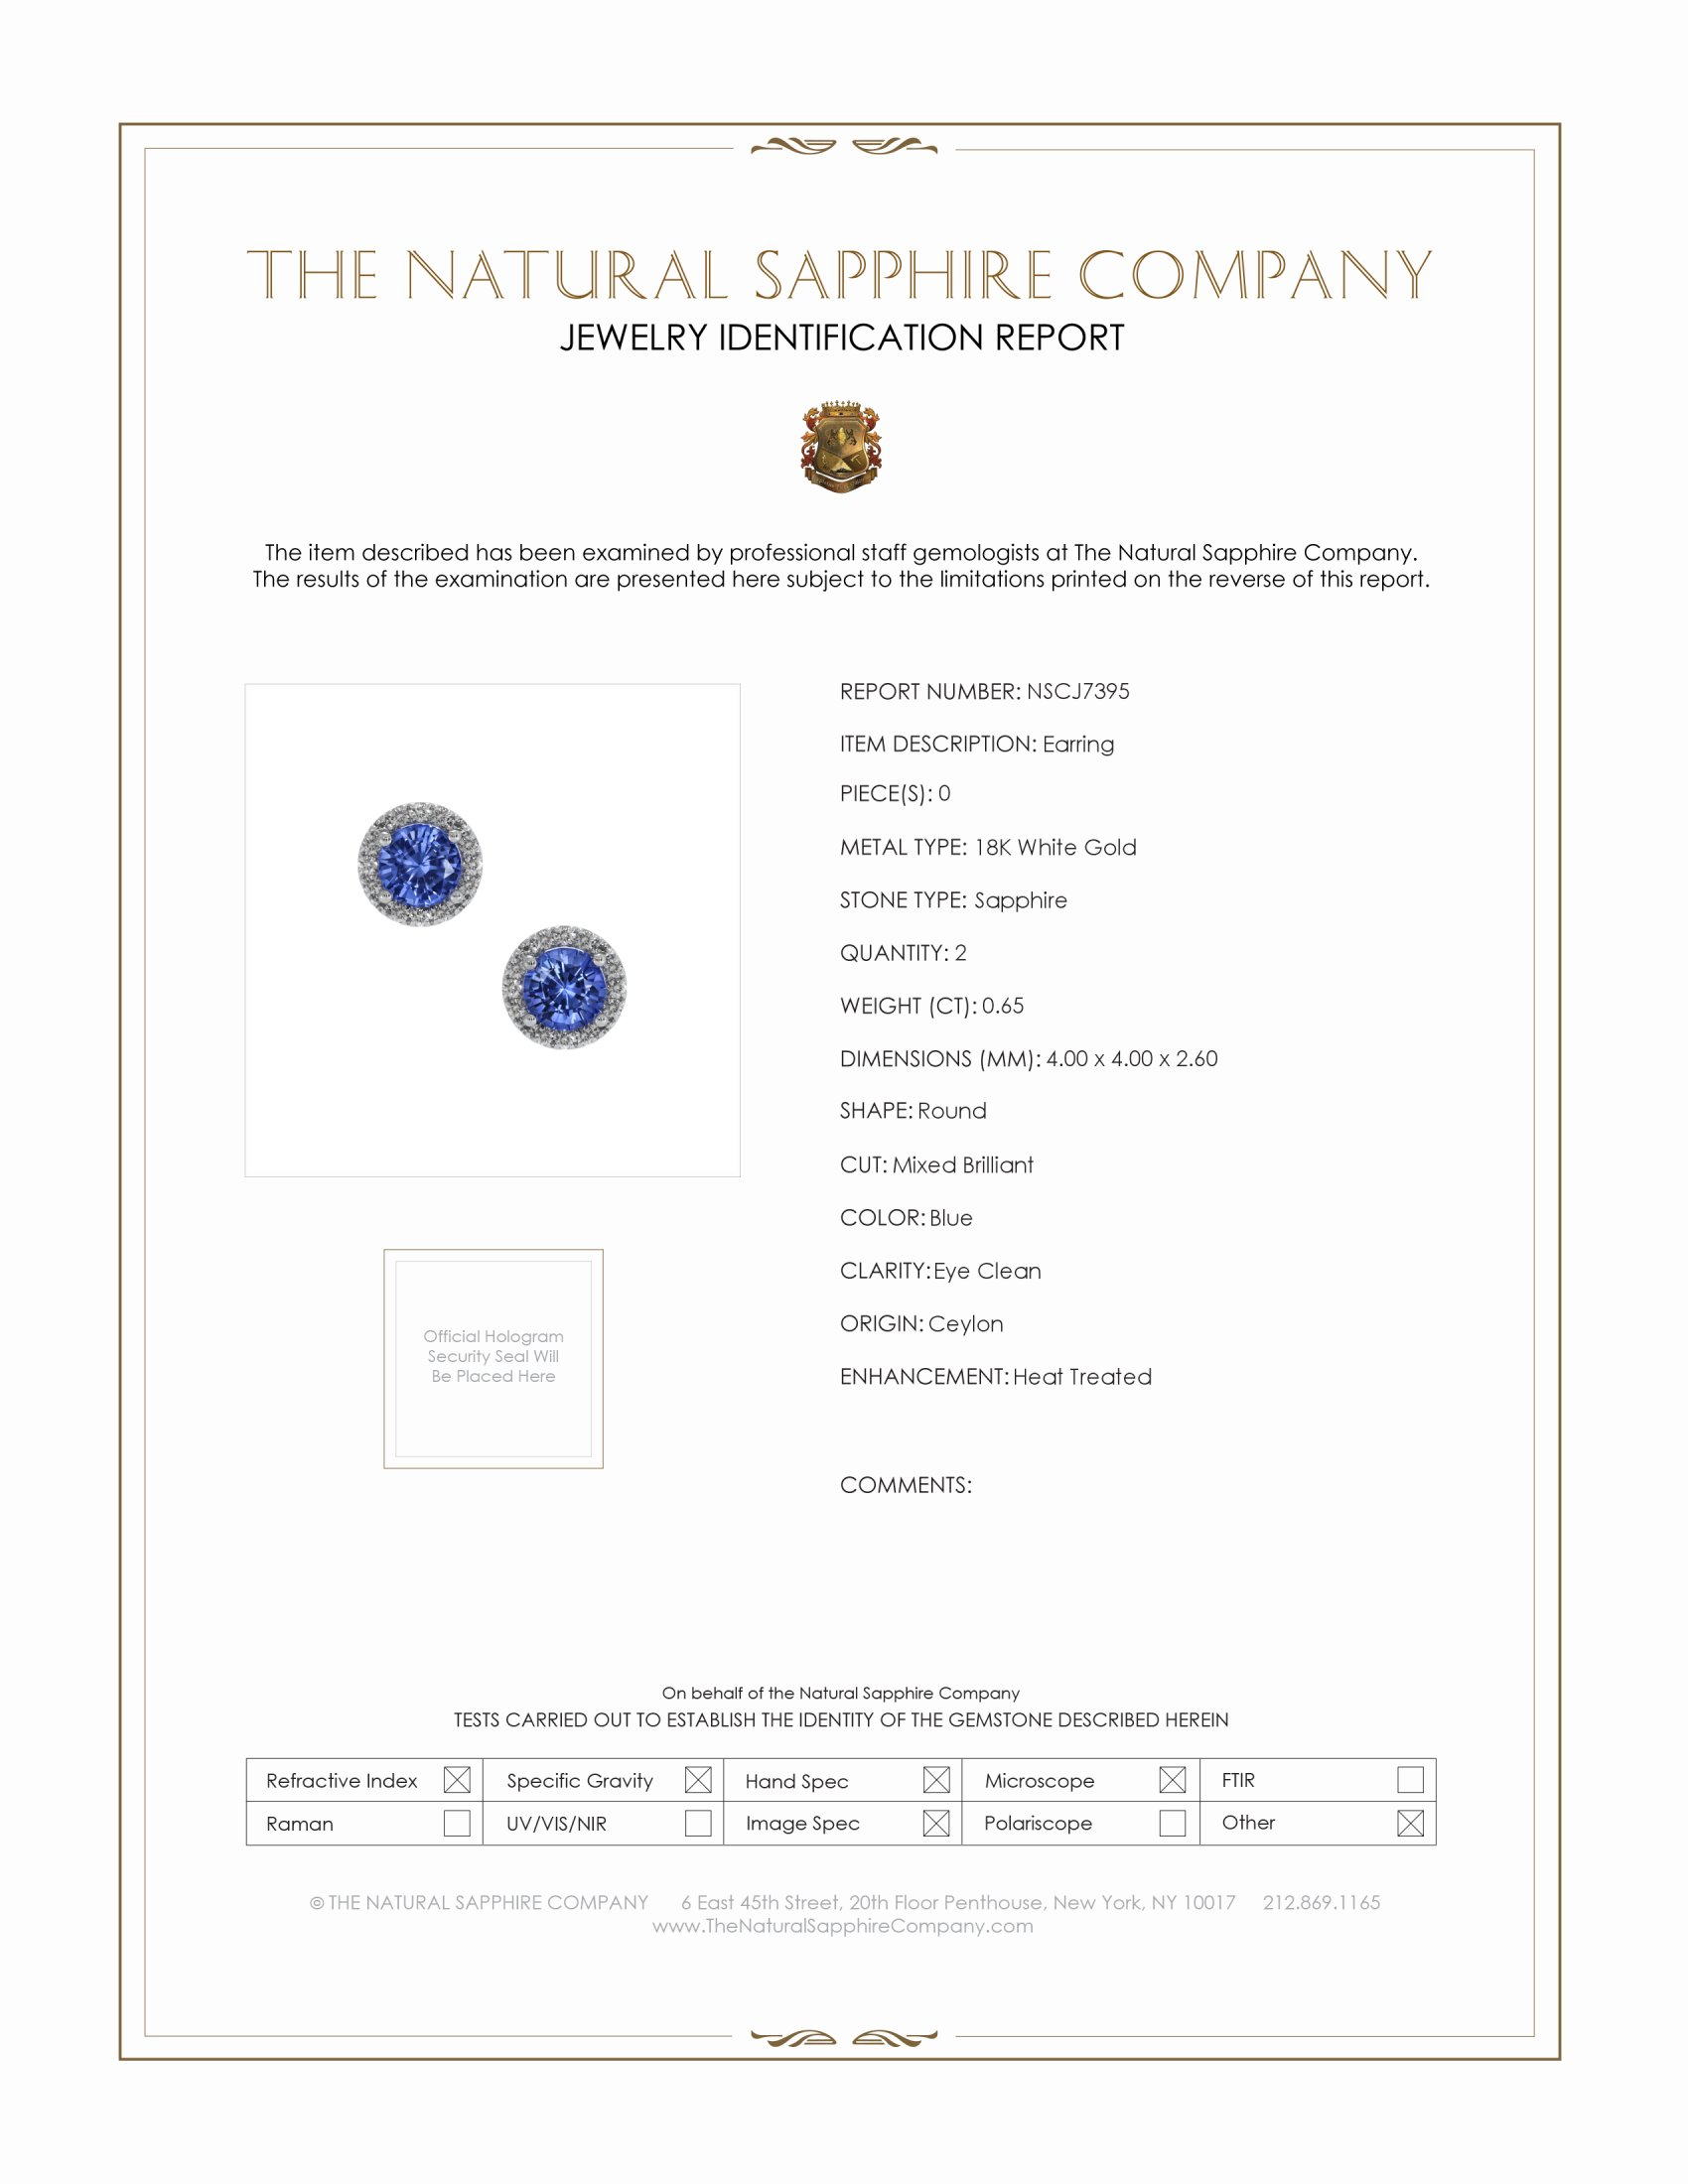 0.65ct Blue Sapphire Earring Certification